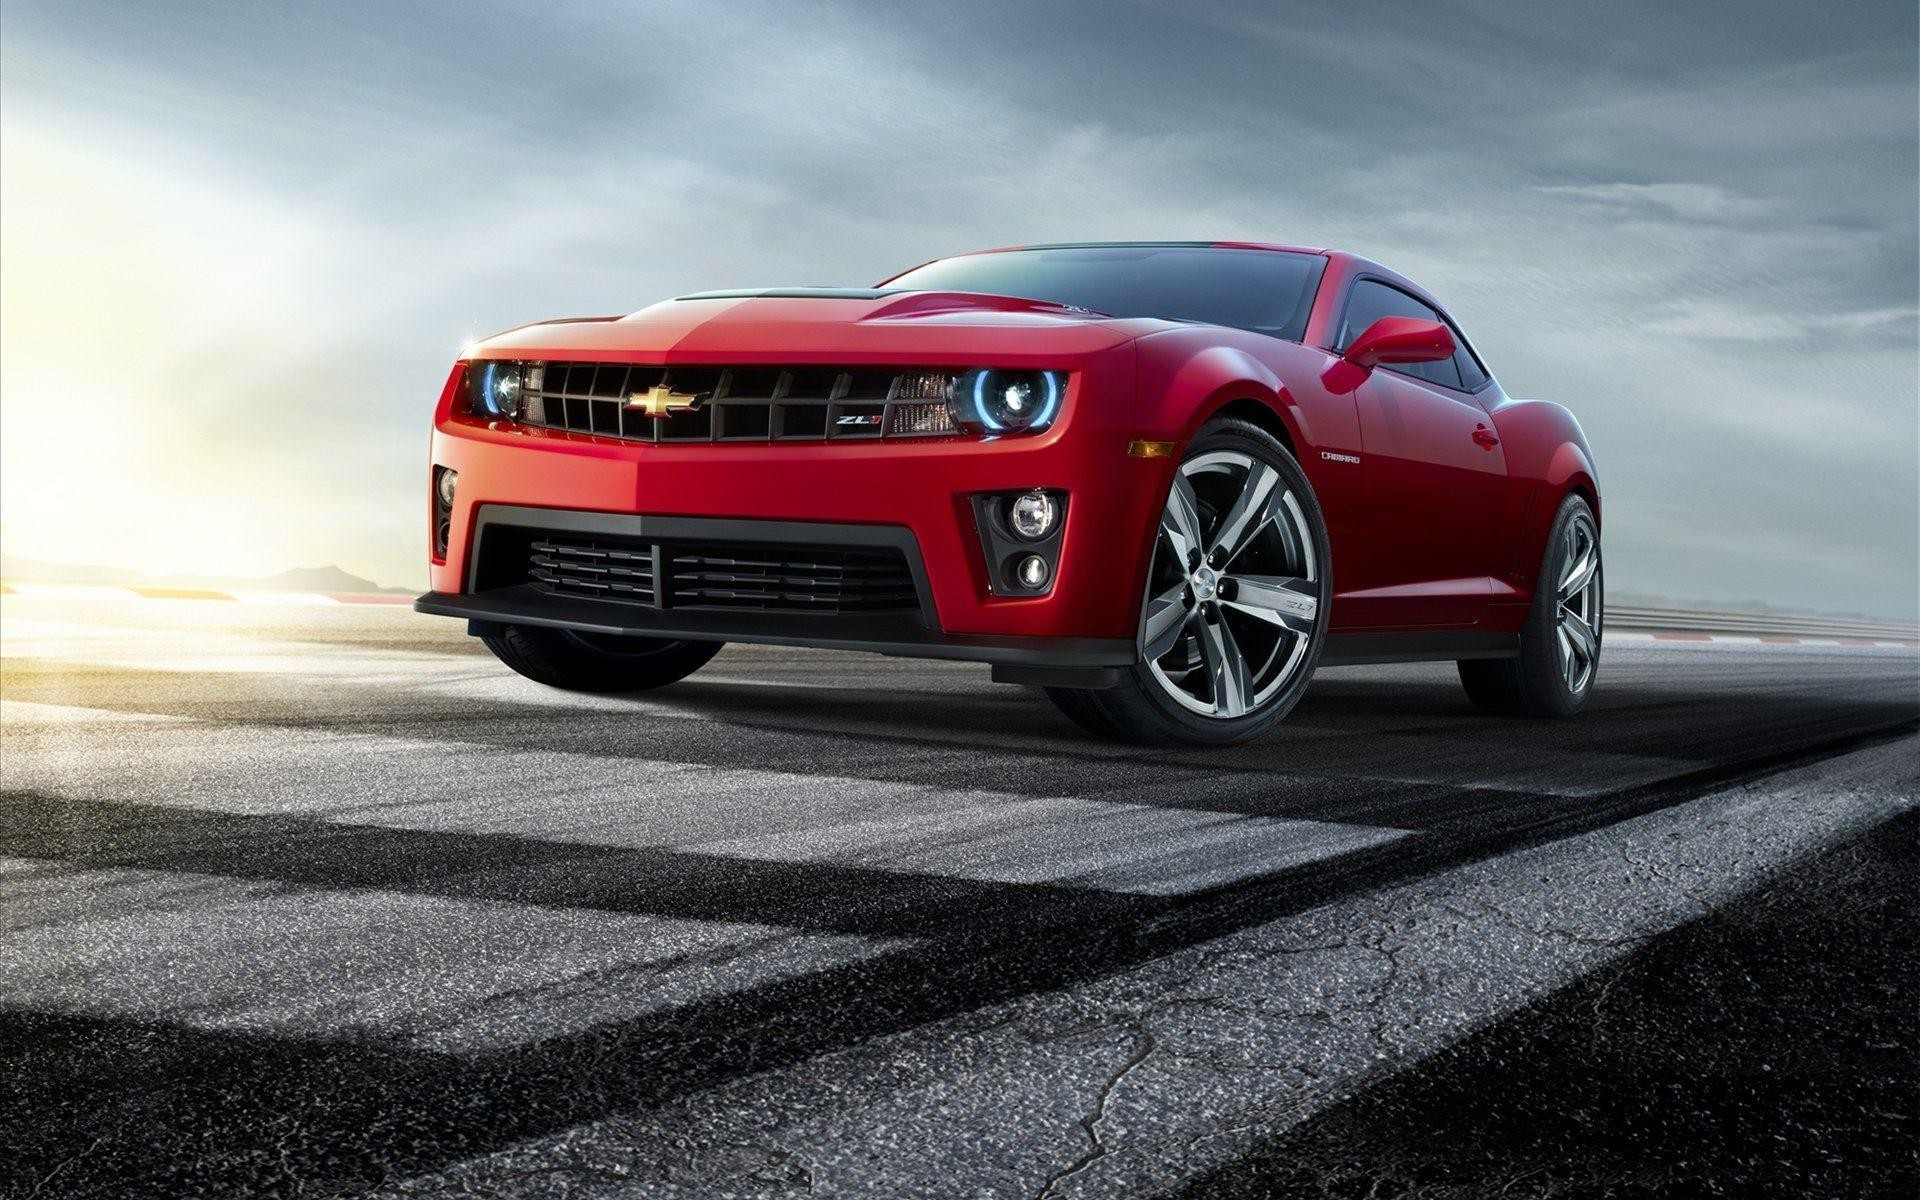 1920x1200 Camaro Zl1 Wallpapers - Full HD wallpaper search